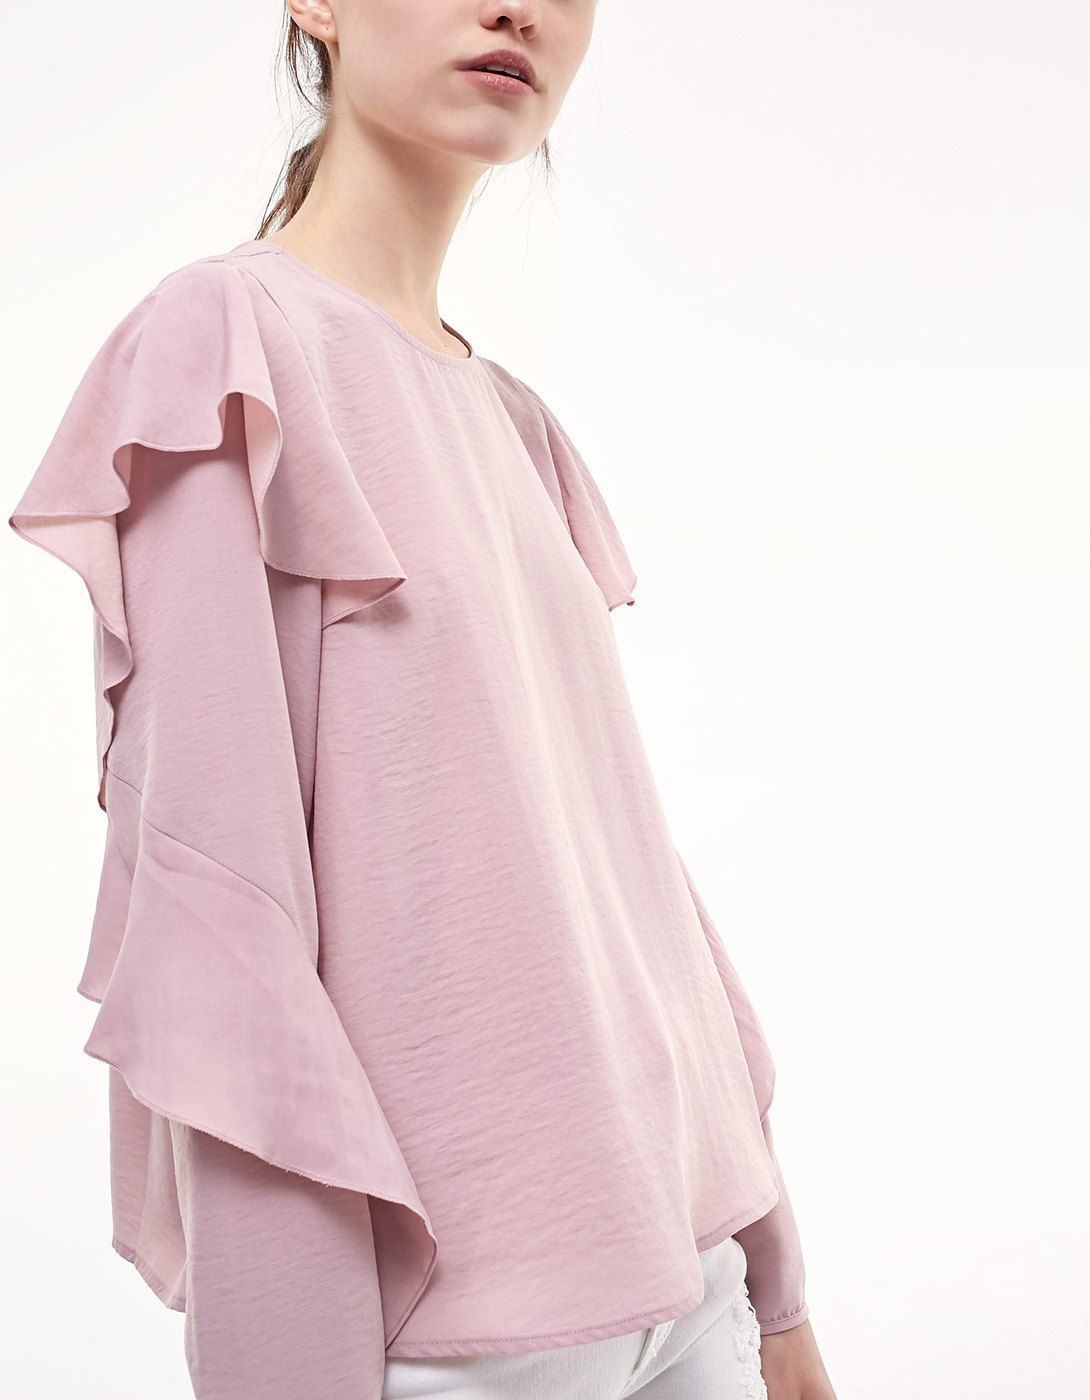 Shirt with shoulder frill detail Clothing | Stradivarius